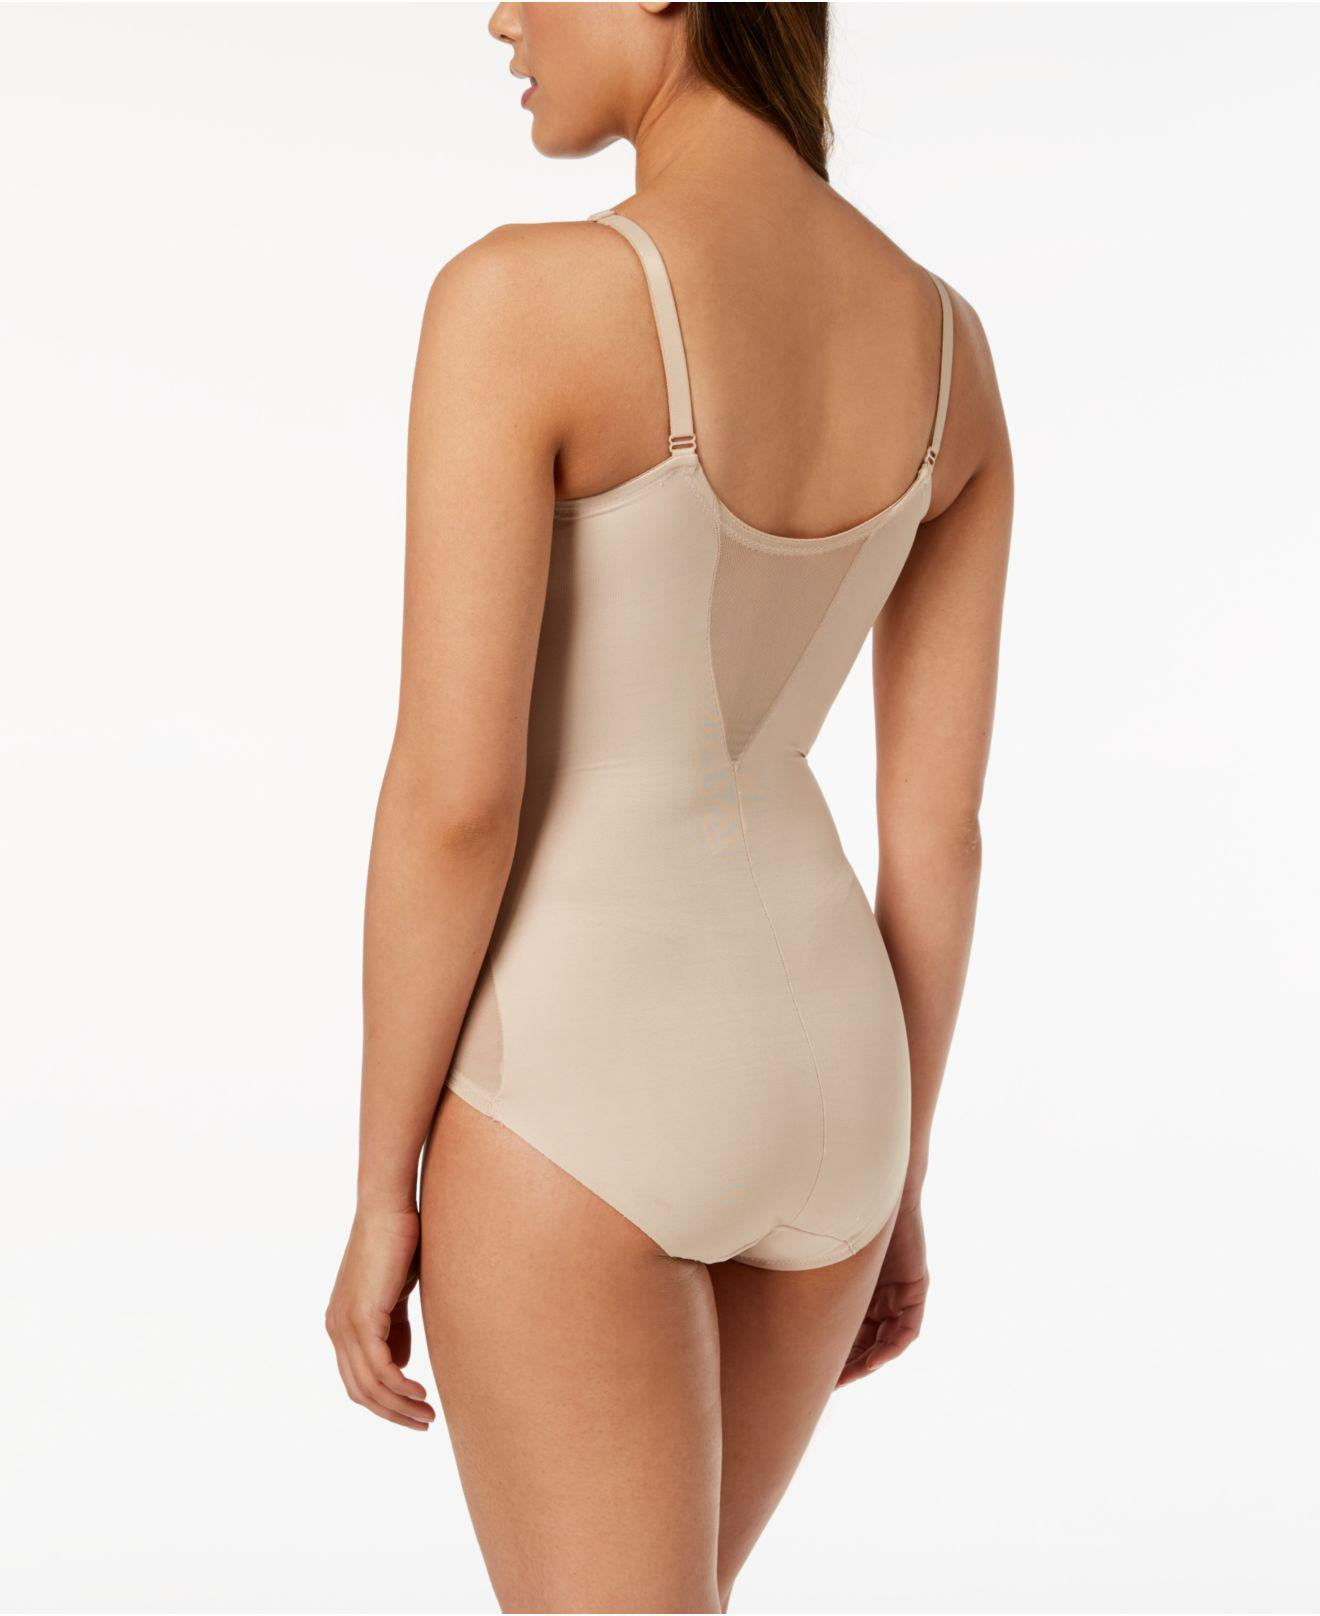 f5b9834bedb Miraclesuit Extra Firm Control Sheer Trim Body Shaper 2783 in Natural - Save  7% - Lyst